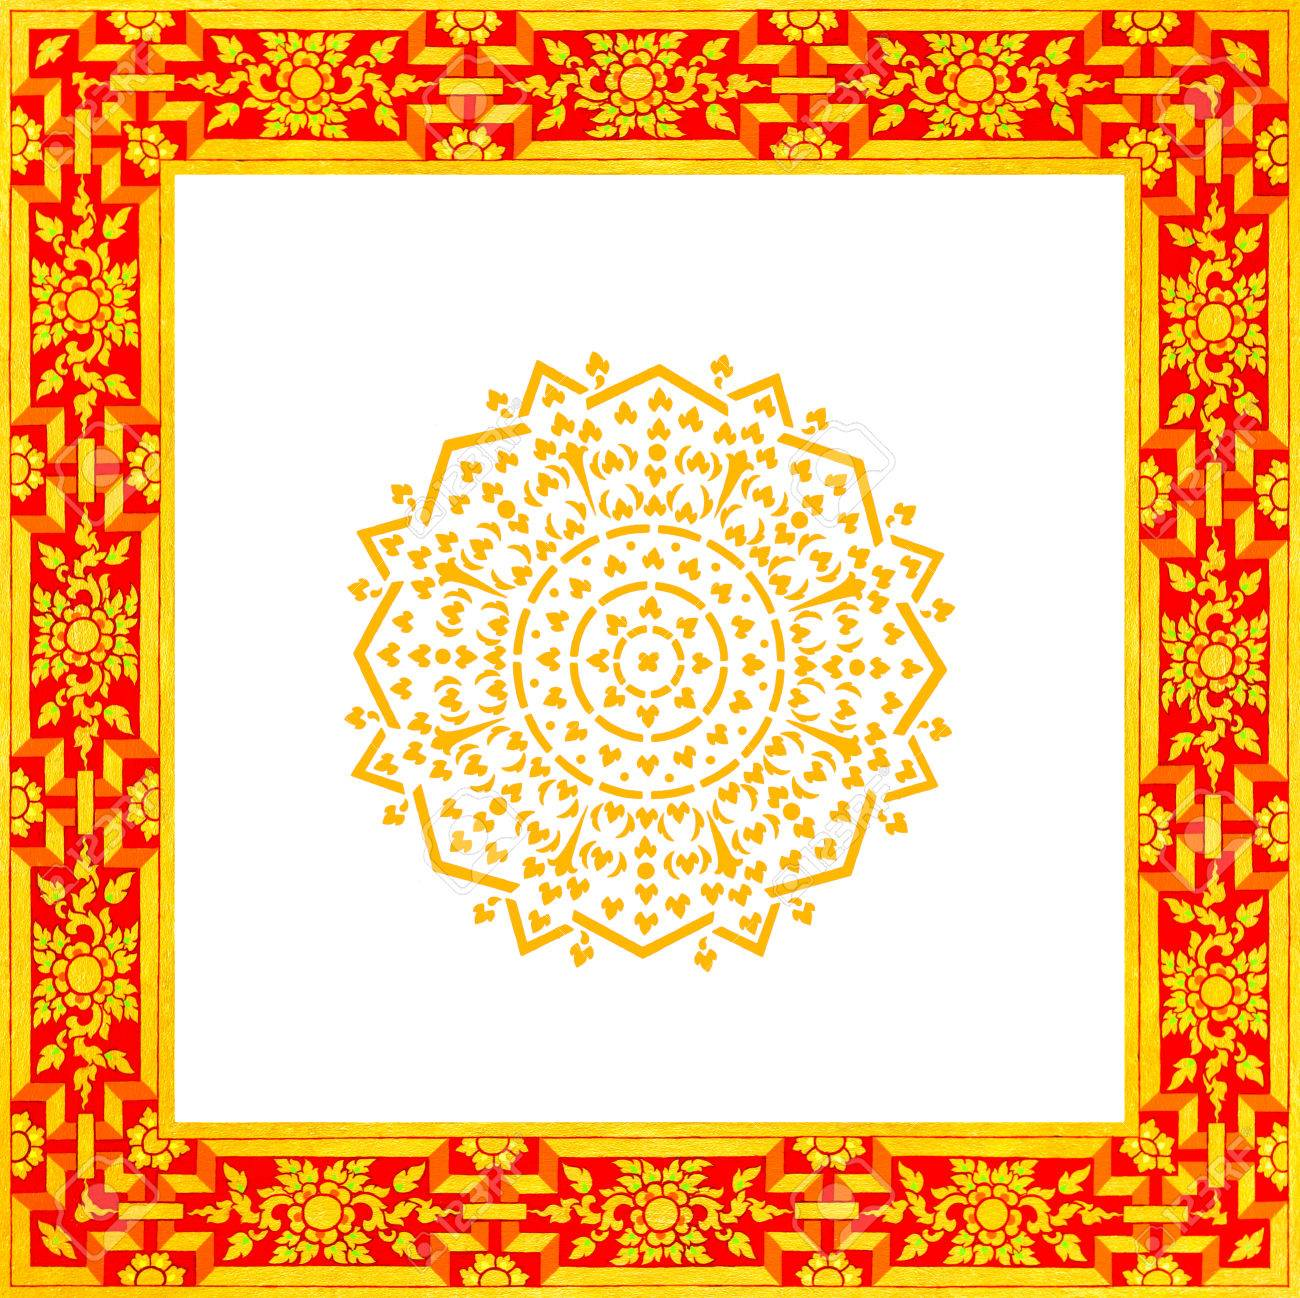 Thailand Flower Pattern Octagon In A Square Gold Frame Stock Photo ...